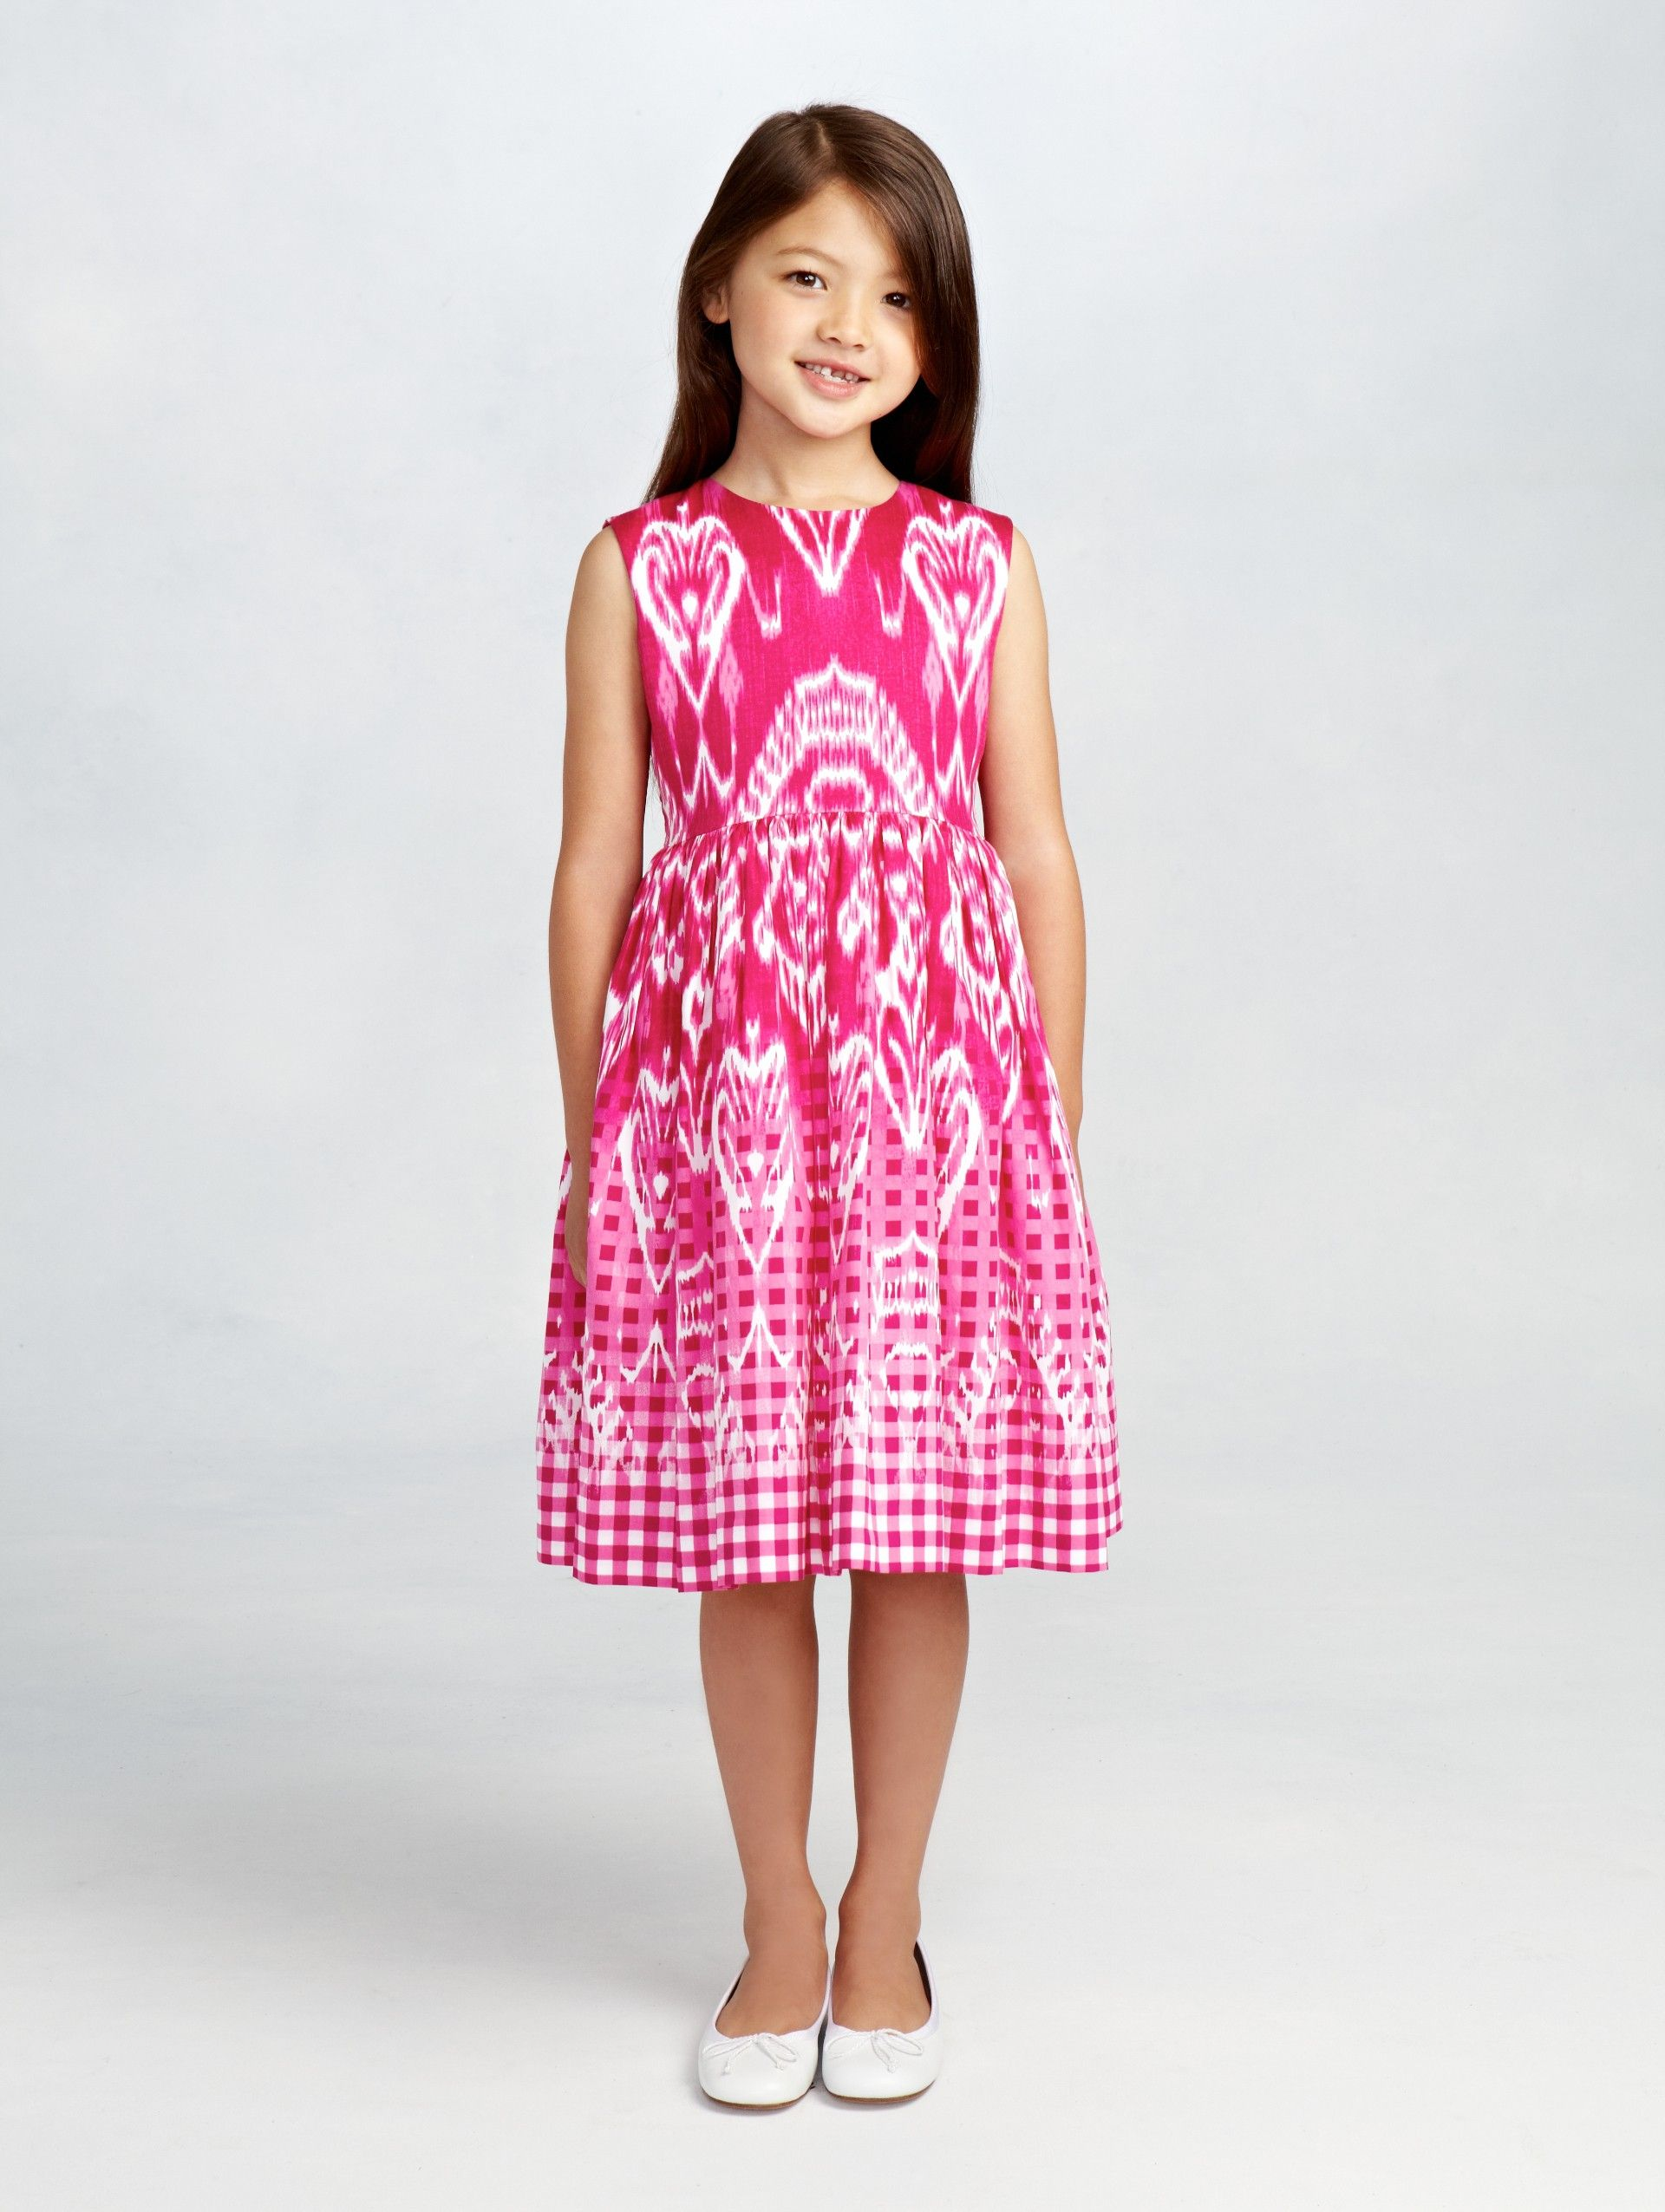 Oscar de la Renta | Small Word.... Fashion For Little V.I.P ...